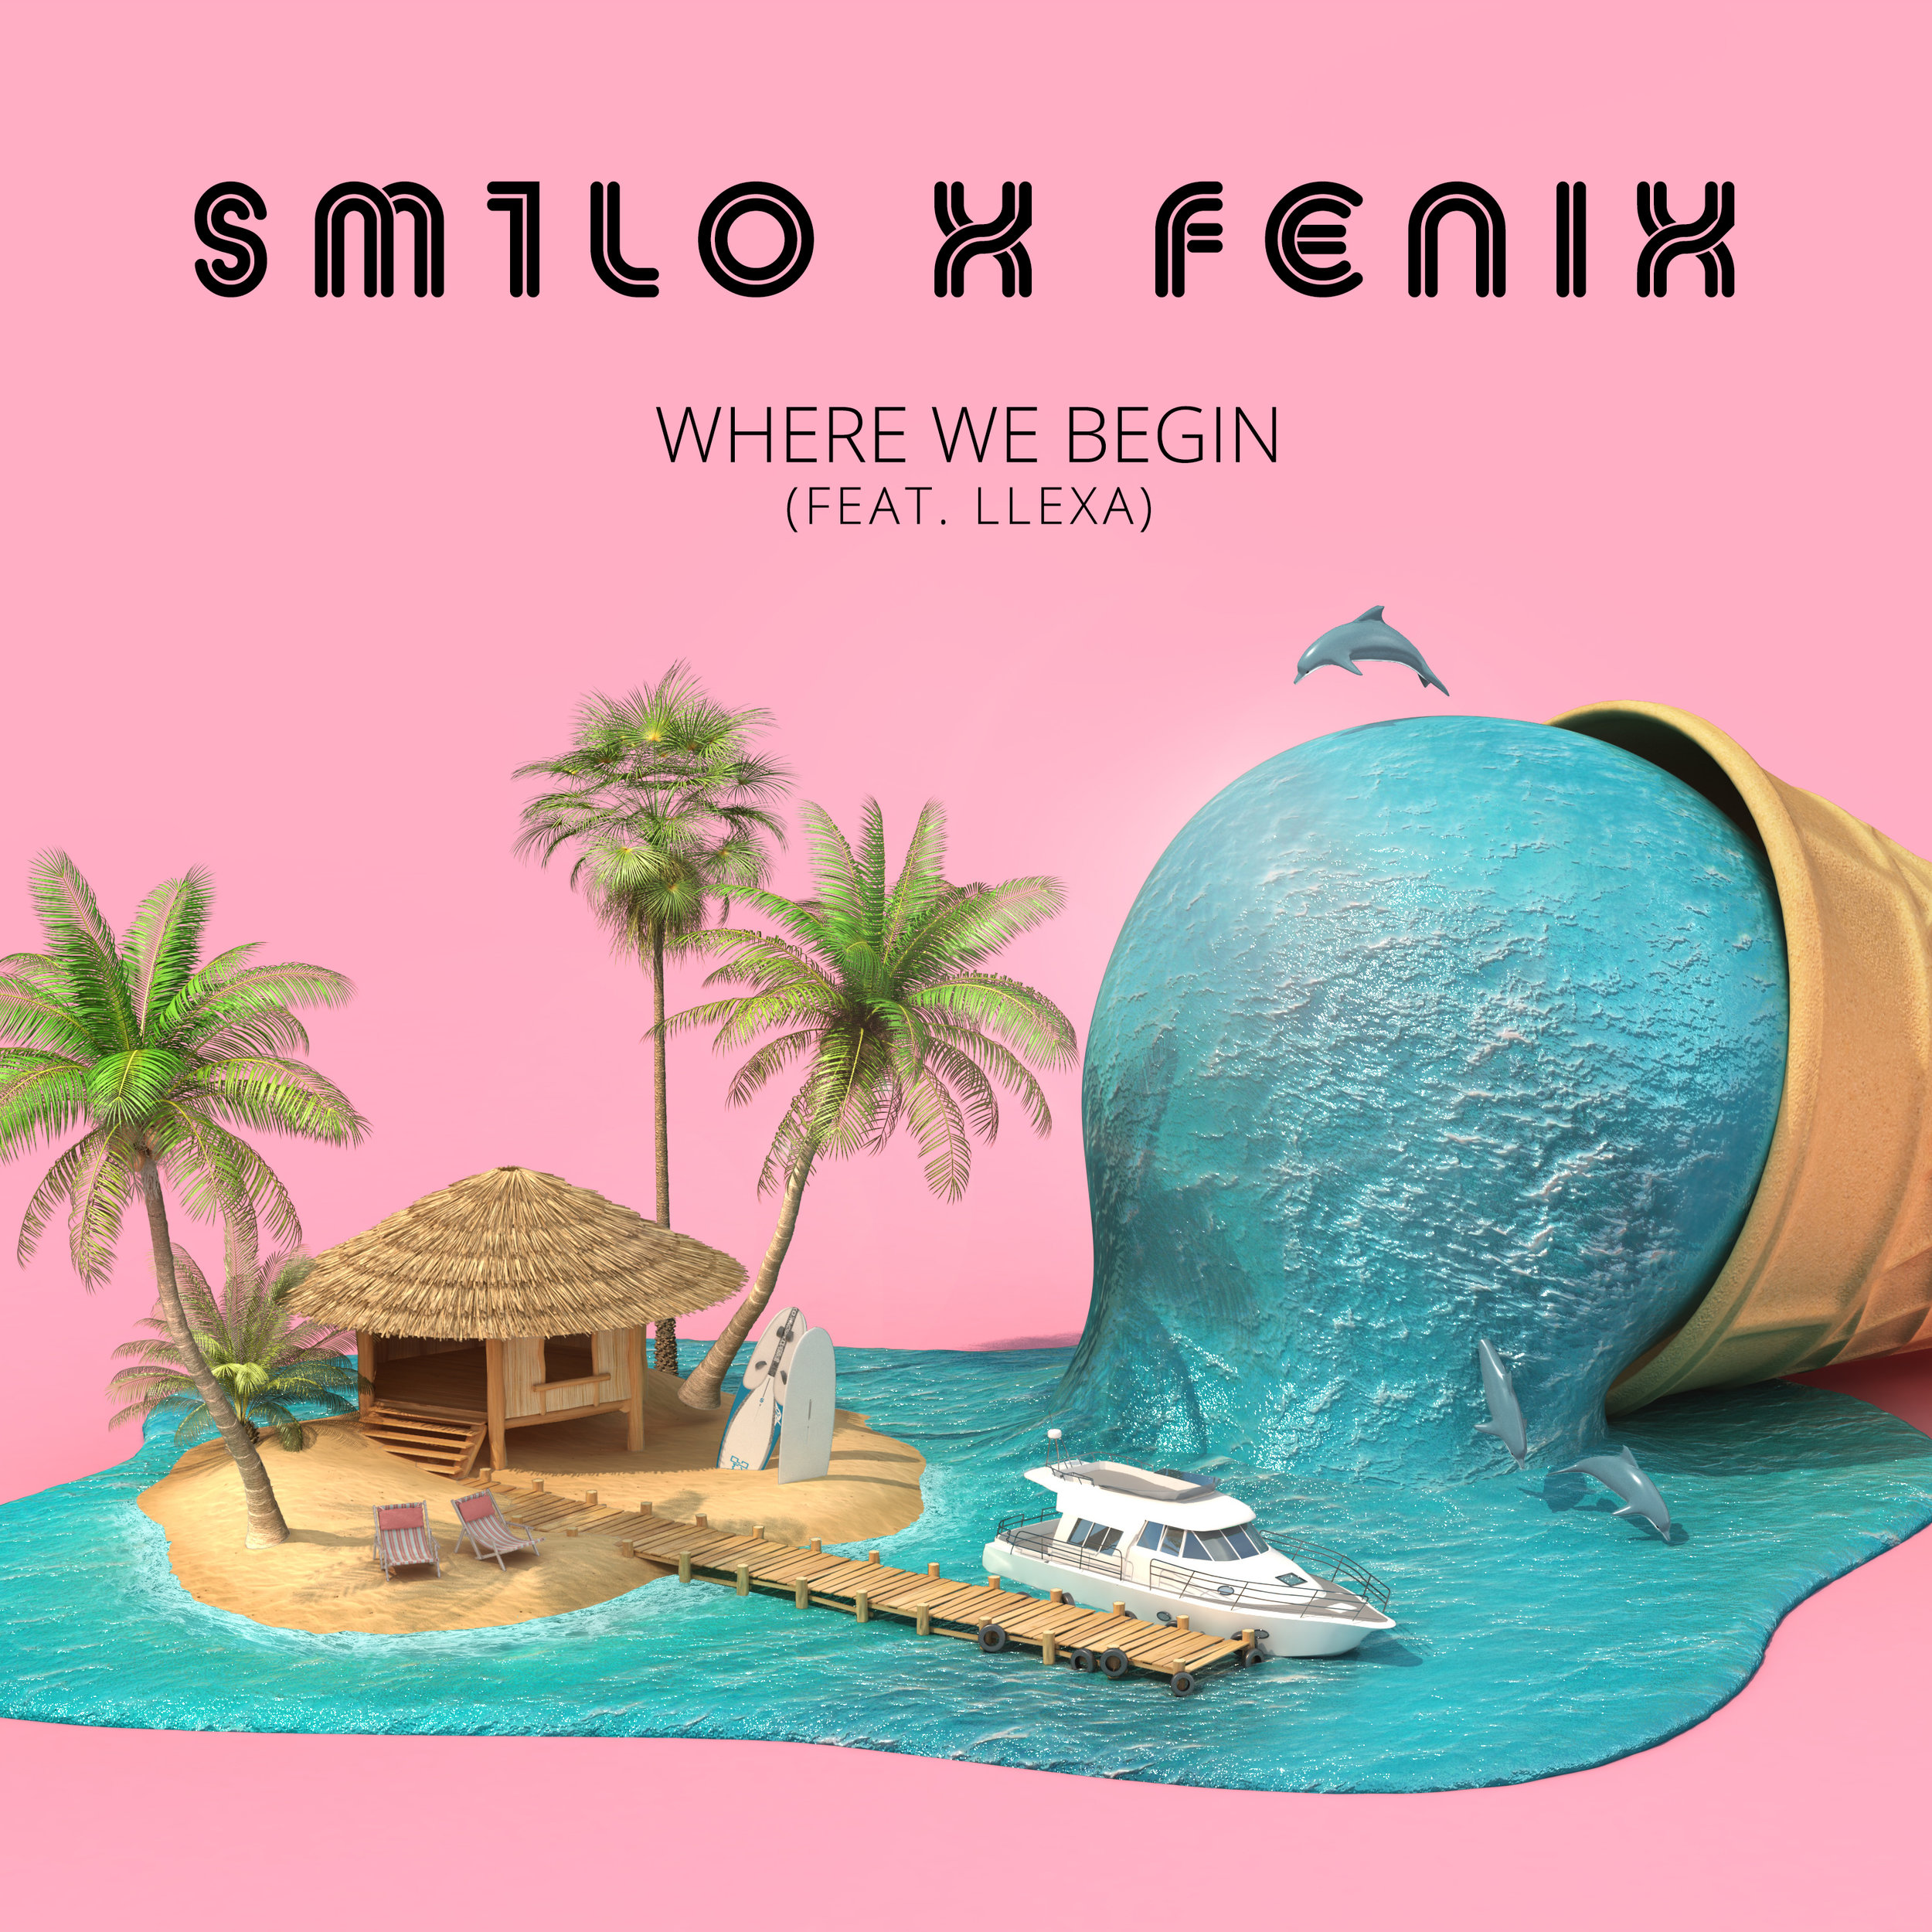 where we begin out june 14th